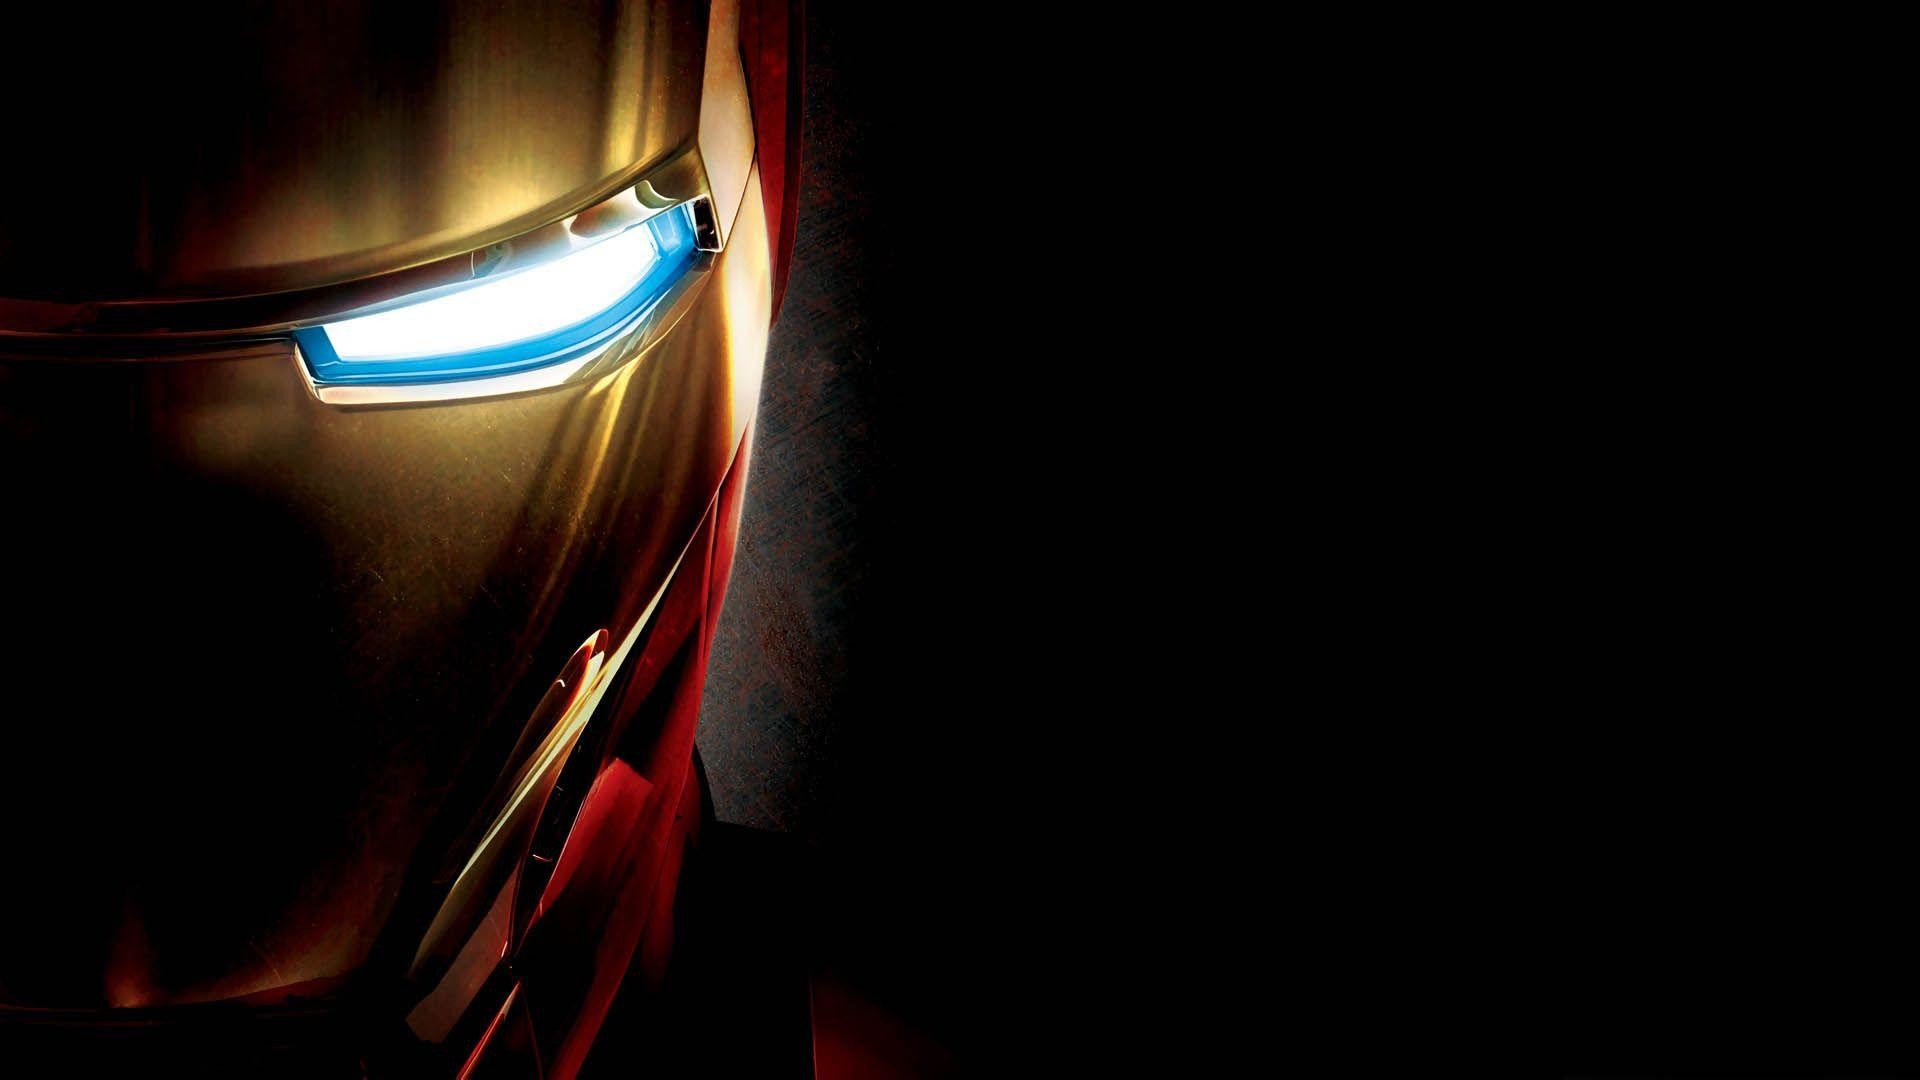 1920x1080 Iron Man 3 Wallpapers - HD Wallpapers Inn